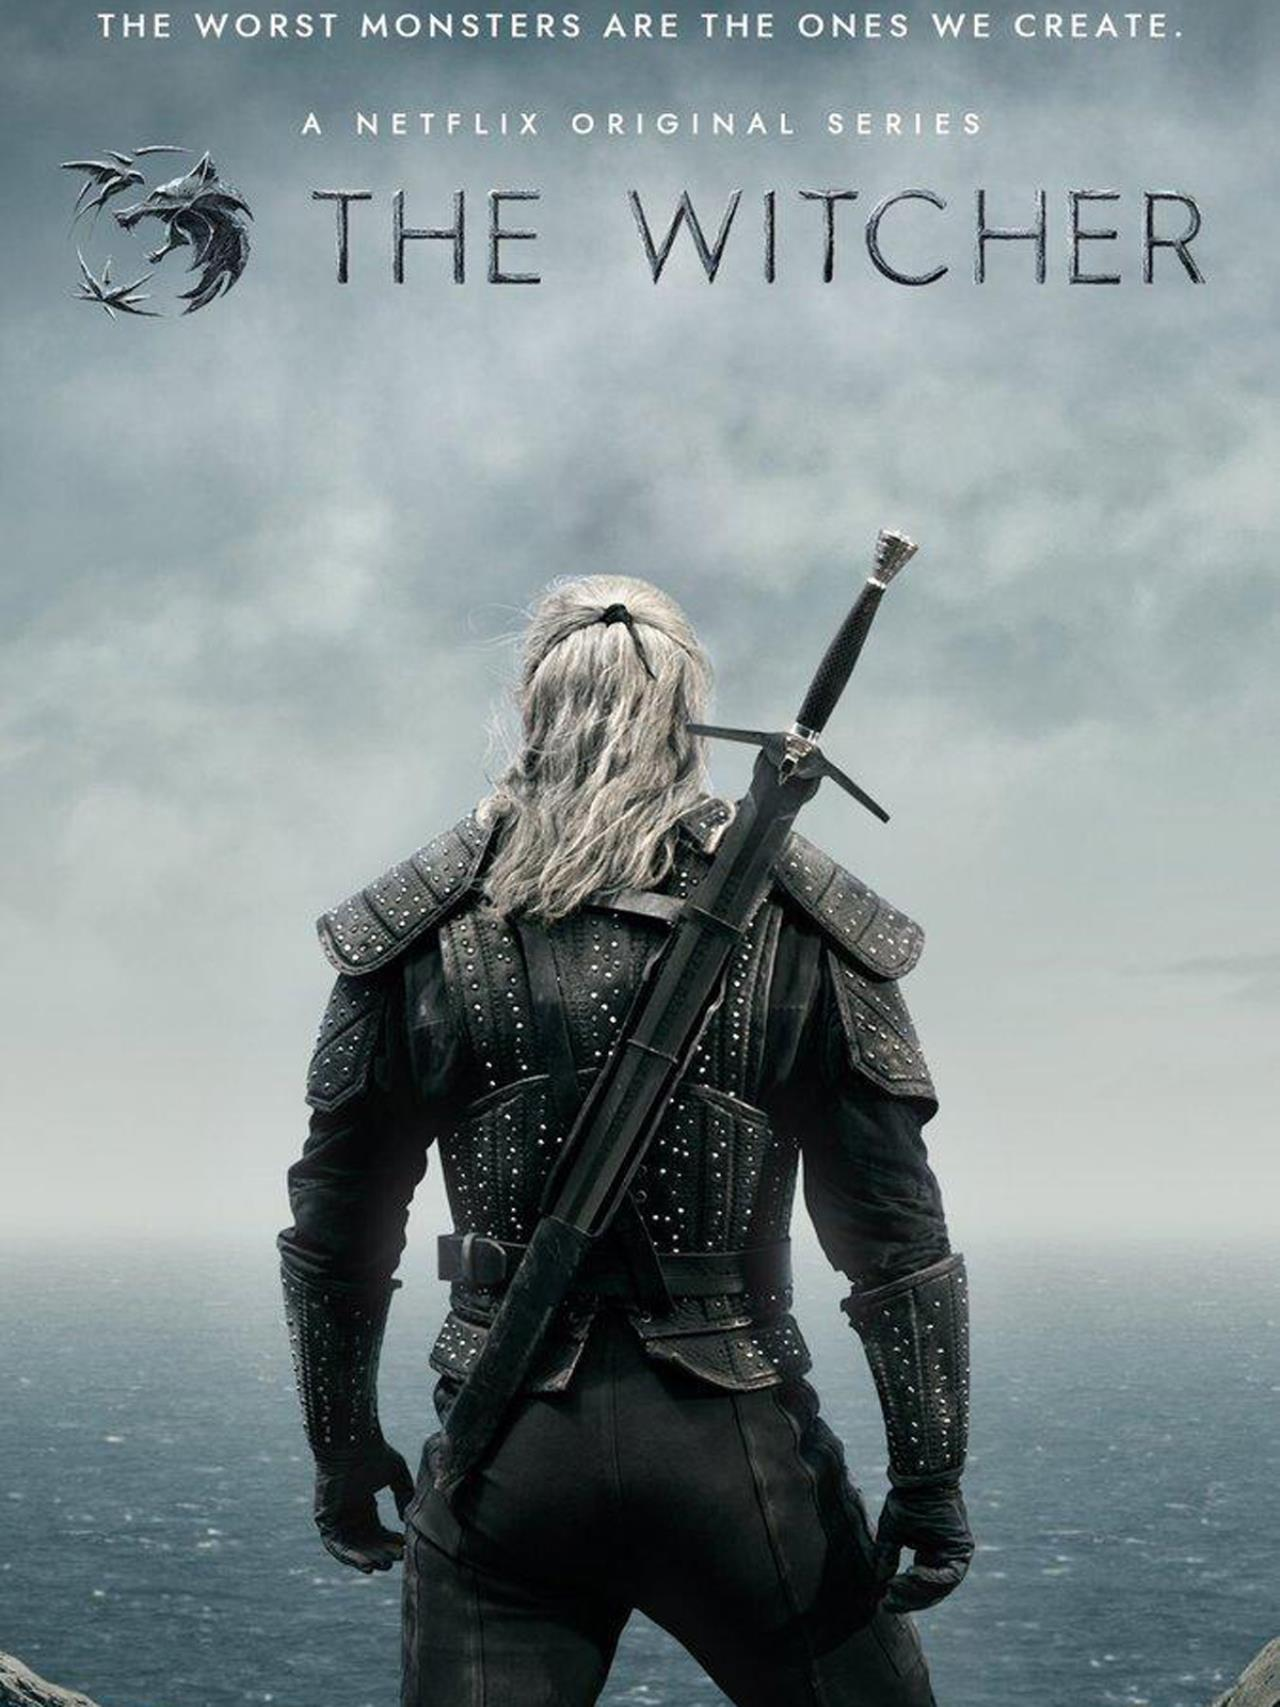 THE WITCHER (T1)